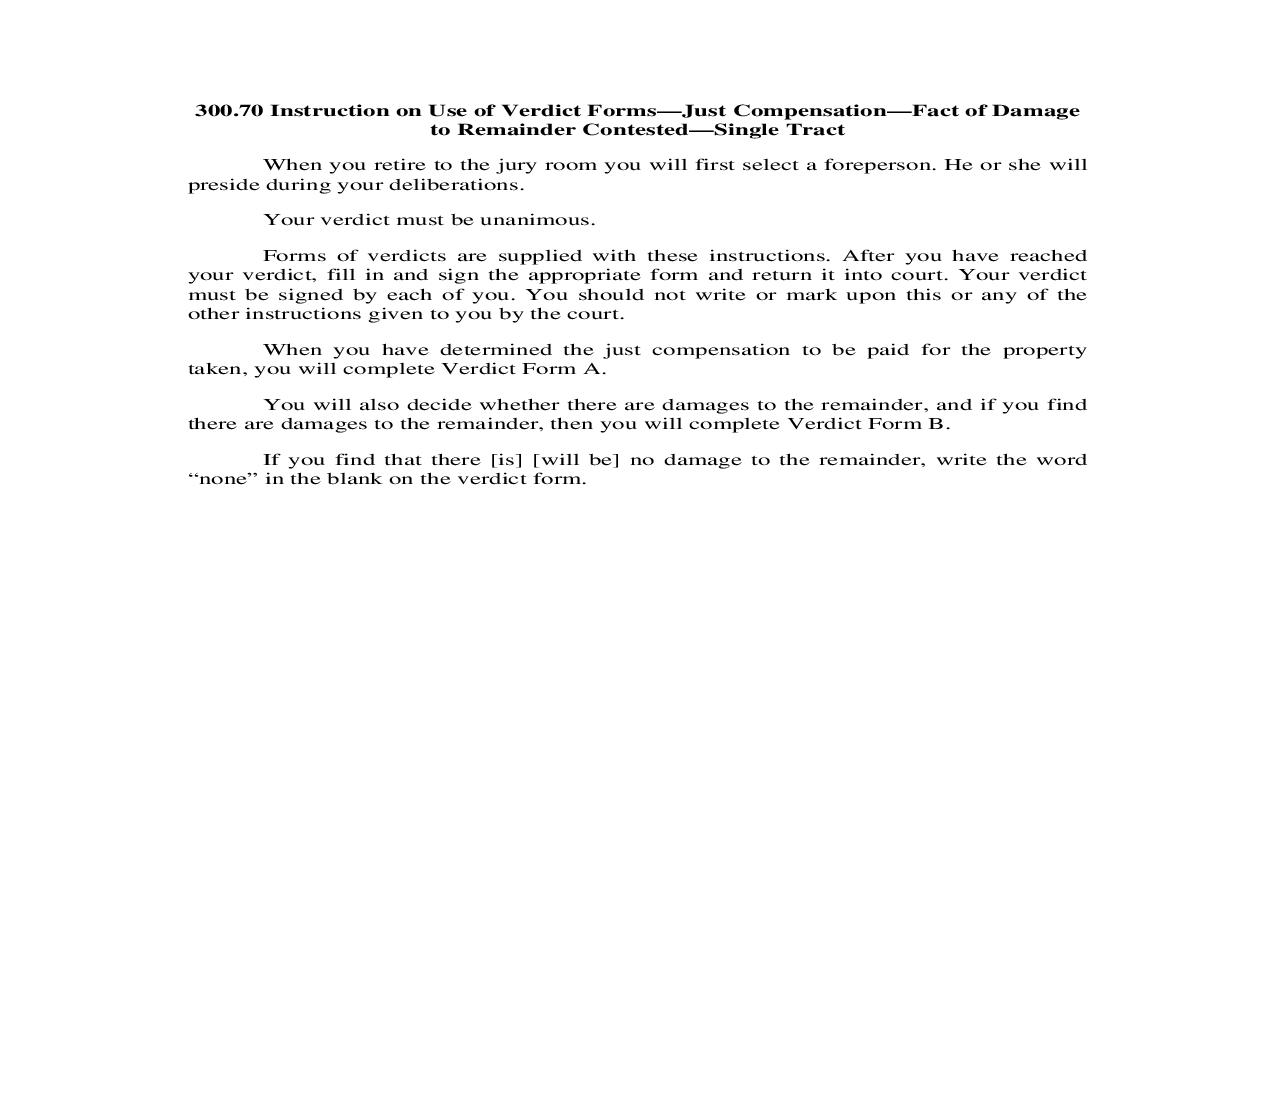 300.70. Instruction on Use of Verdict Forms-Just Compensation-Fact of Damage to Remainder Contested-Single Tract | Pdf Doc Docx | Illinois_JI